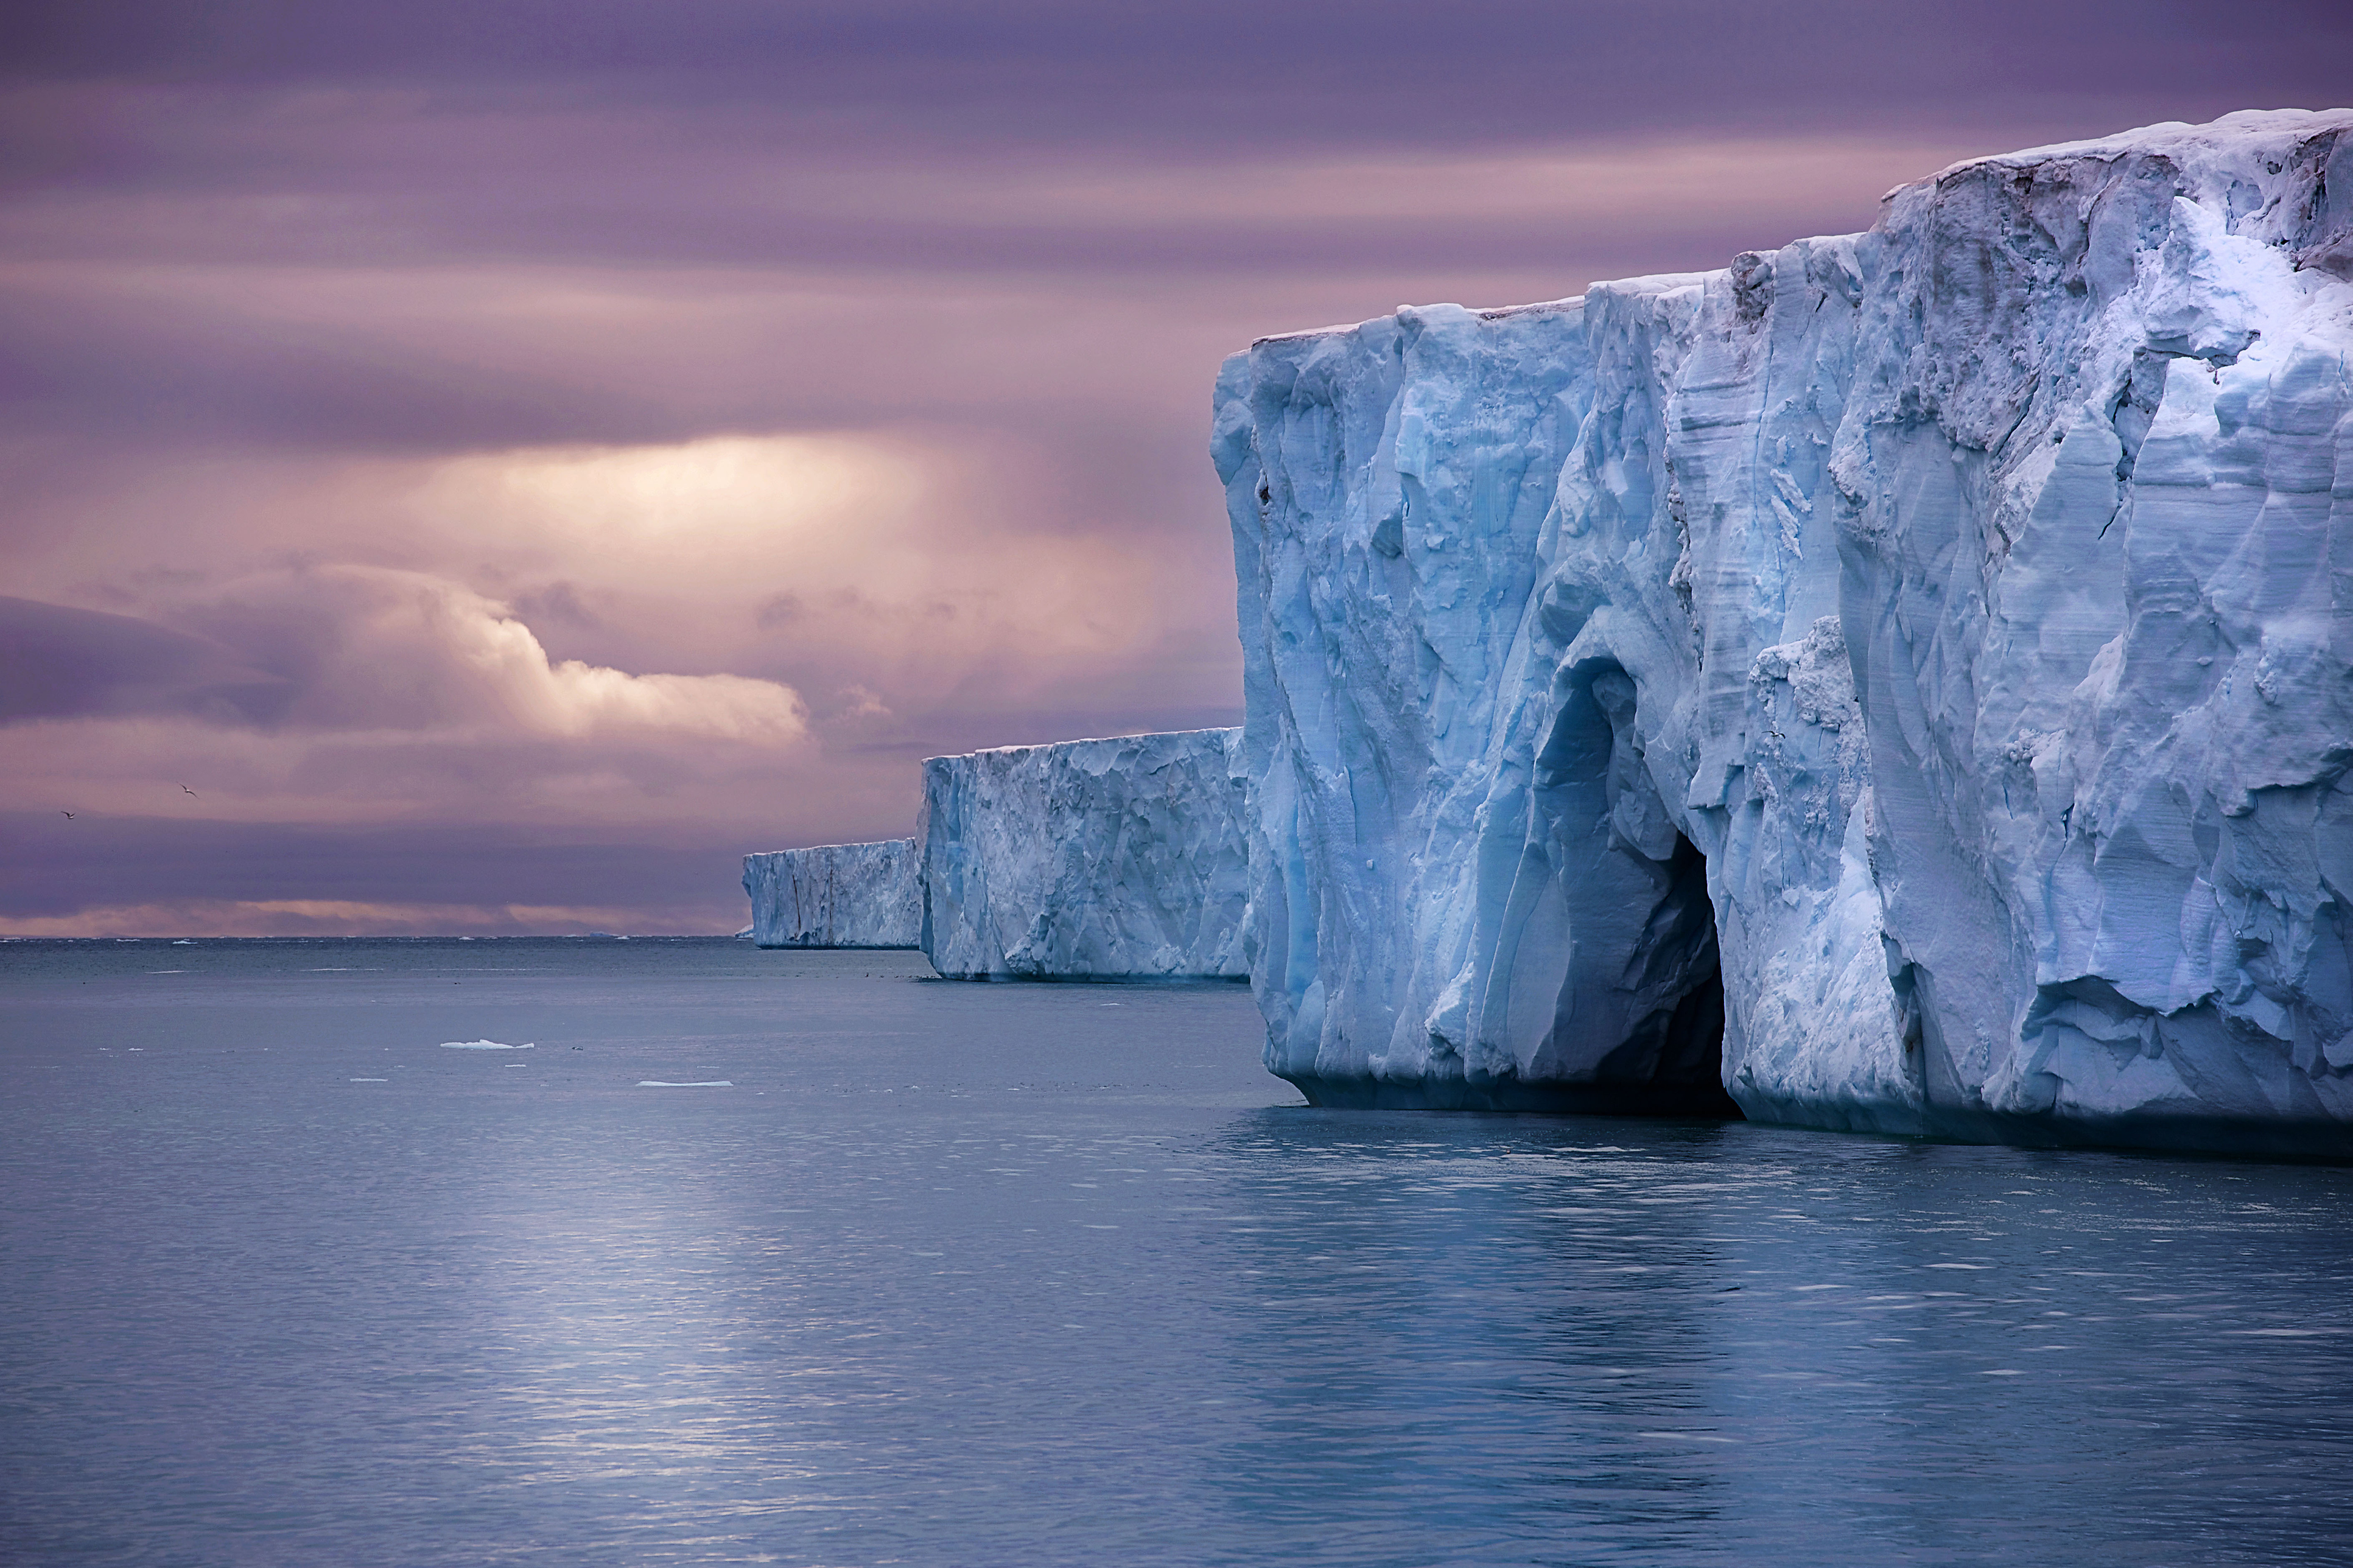 One of Europe's largest pieces of ice, the Austfonna Ice Cap stretches for miles along Nordaustlandet in the Svalbard Archipelago.